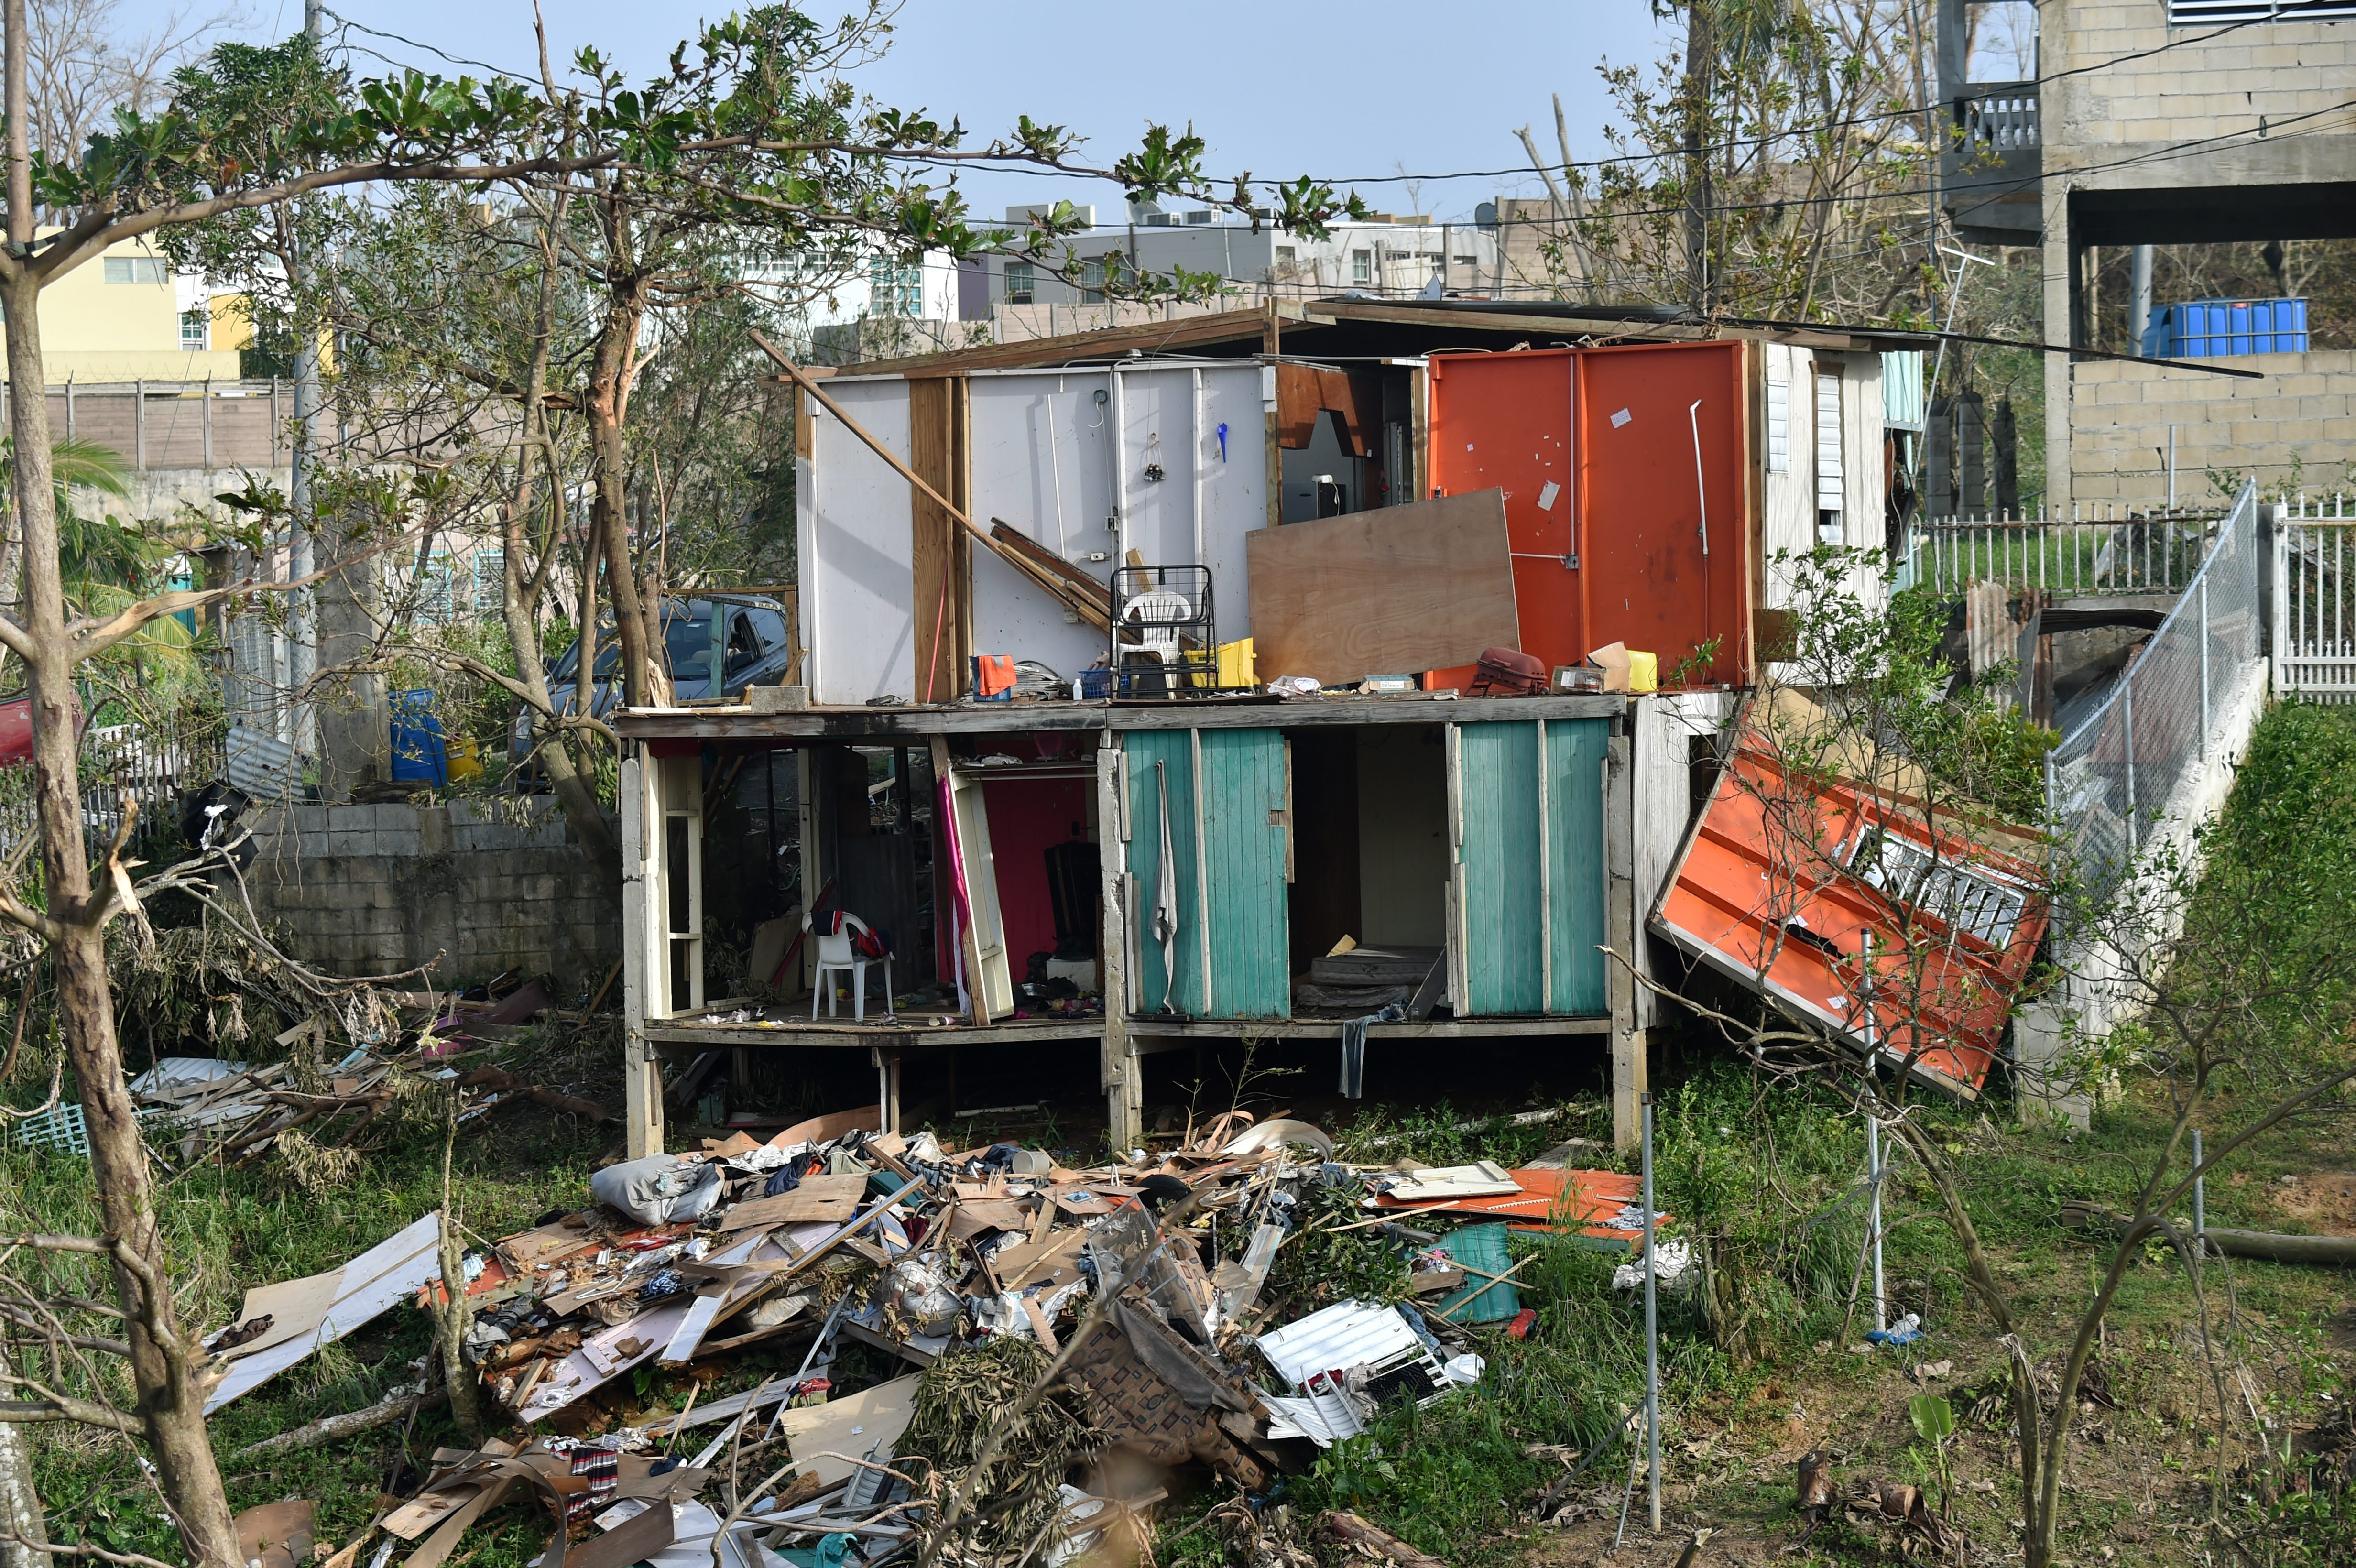 Destroyed homes are seen following passage of Hurricane Maria in the neigborhood of Acerolas in Toa Alto, Puerto Rico, on September 26, 2017. The US island territory, working without electricity, is struggling to dig out and clean up from its disastrous brush with the hurricane, blamed for at least 33 deaths across the Caribbean. / AFP PHOTO / HECTOR RETAMAL (Photo credit should read HECTOR RETAMAL/AFP/Getty Images)